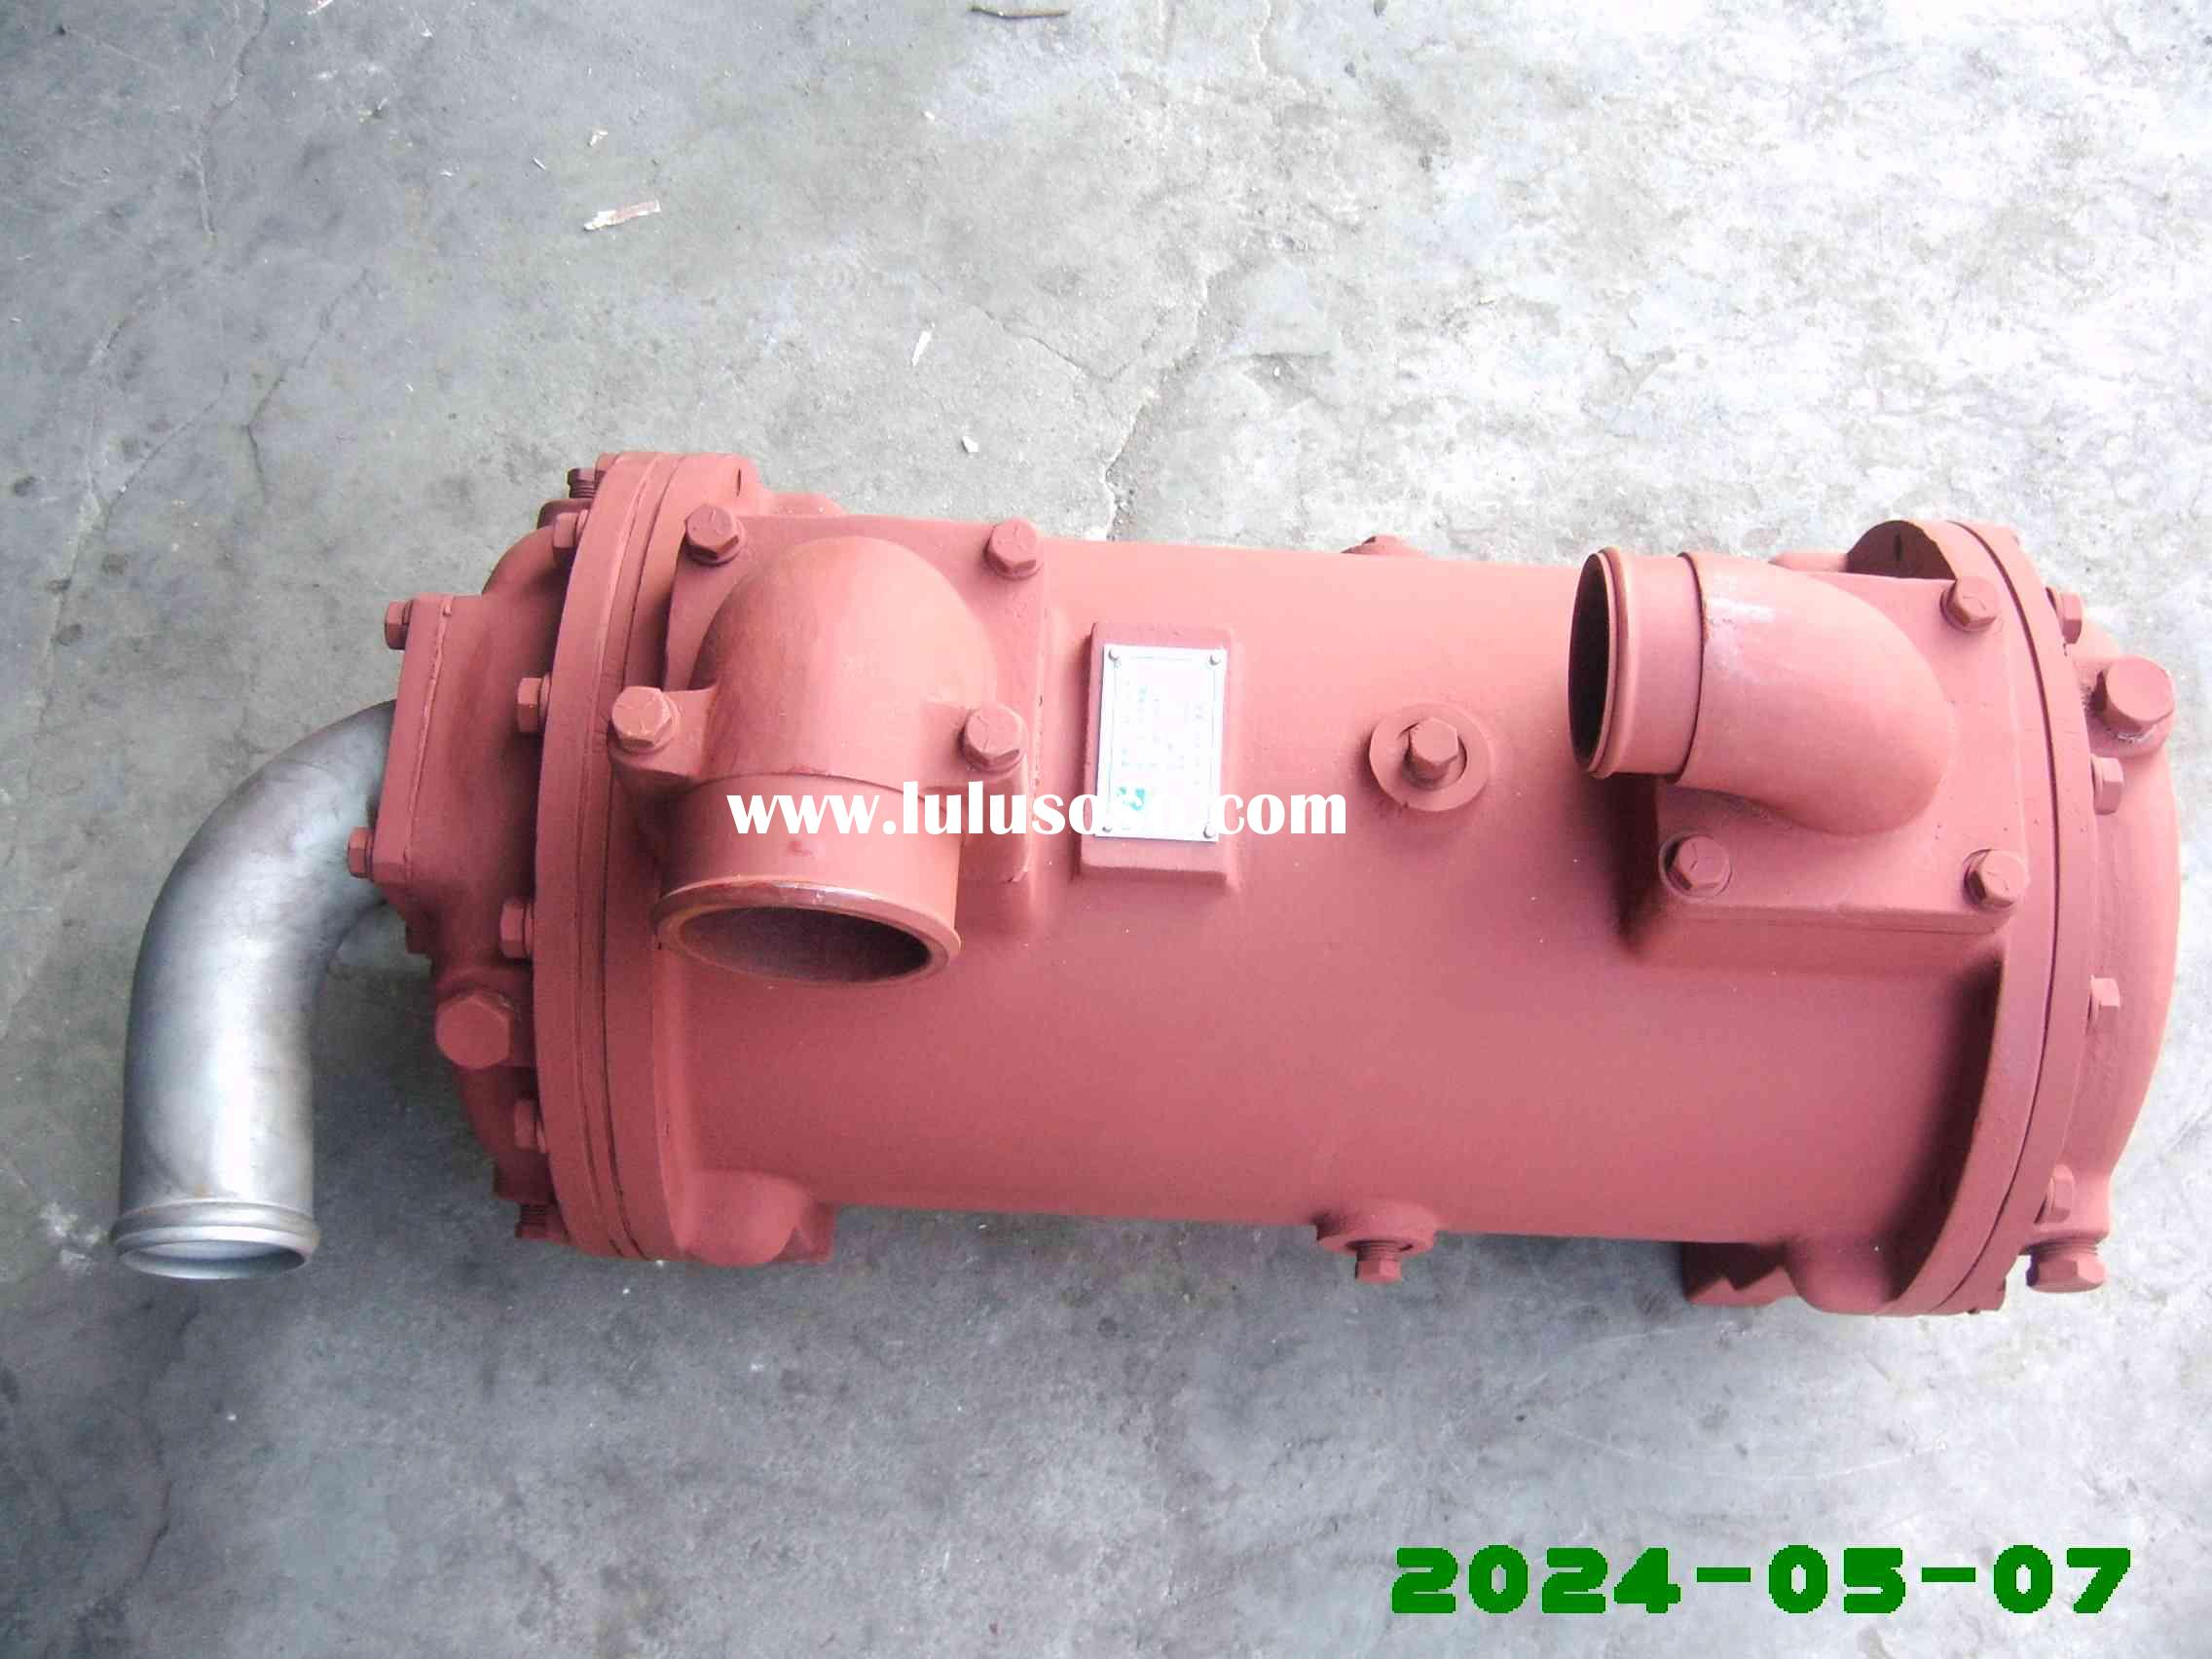 used cummins diesel engine parts NT855-M270 cummins heat exchanger 3655859 for Export Water Pump Uni